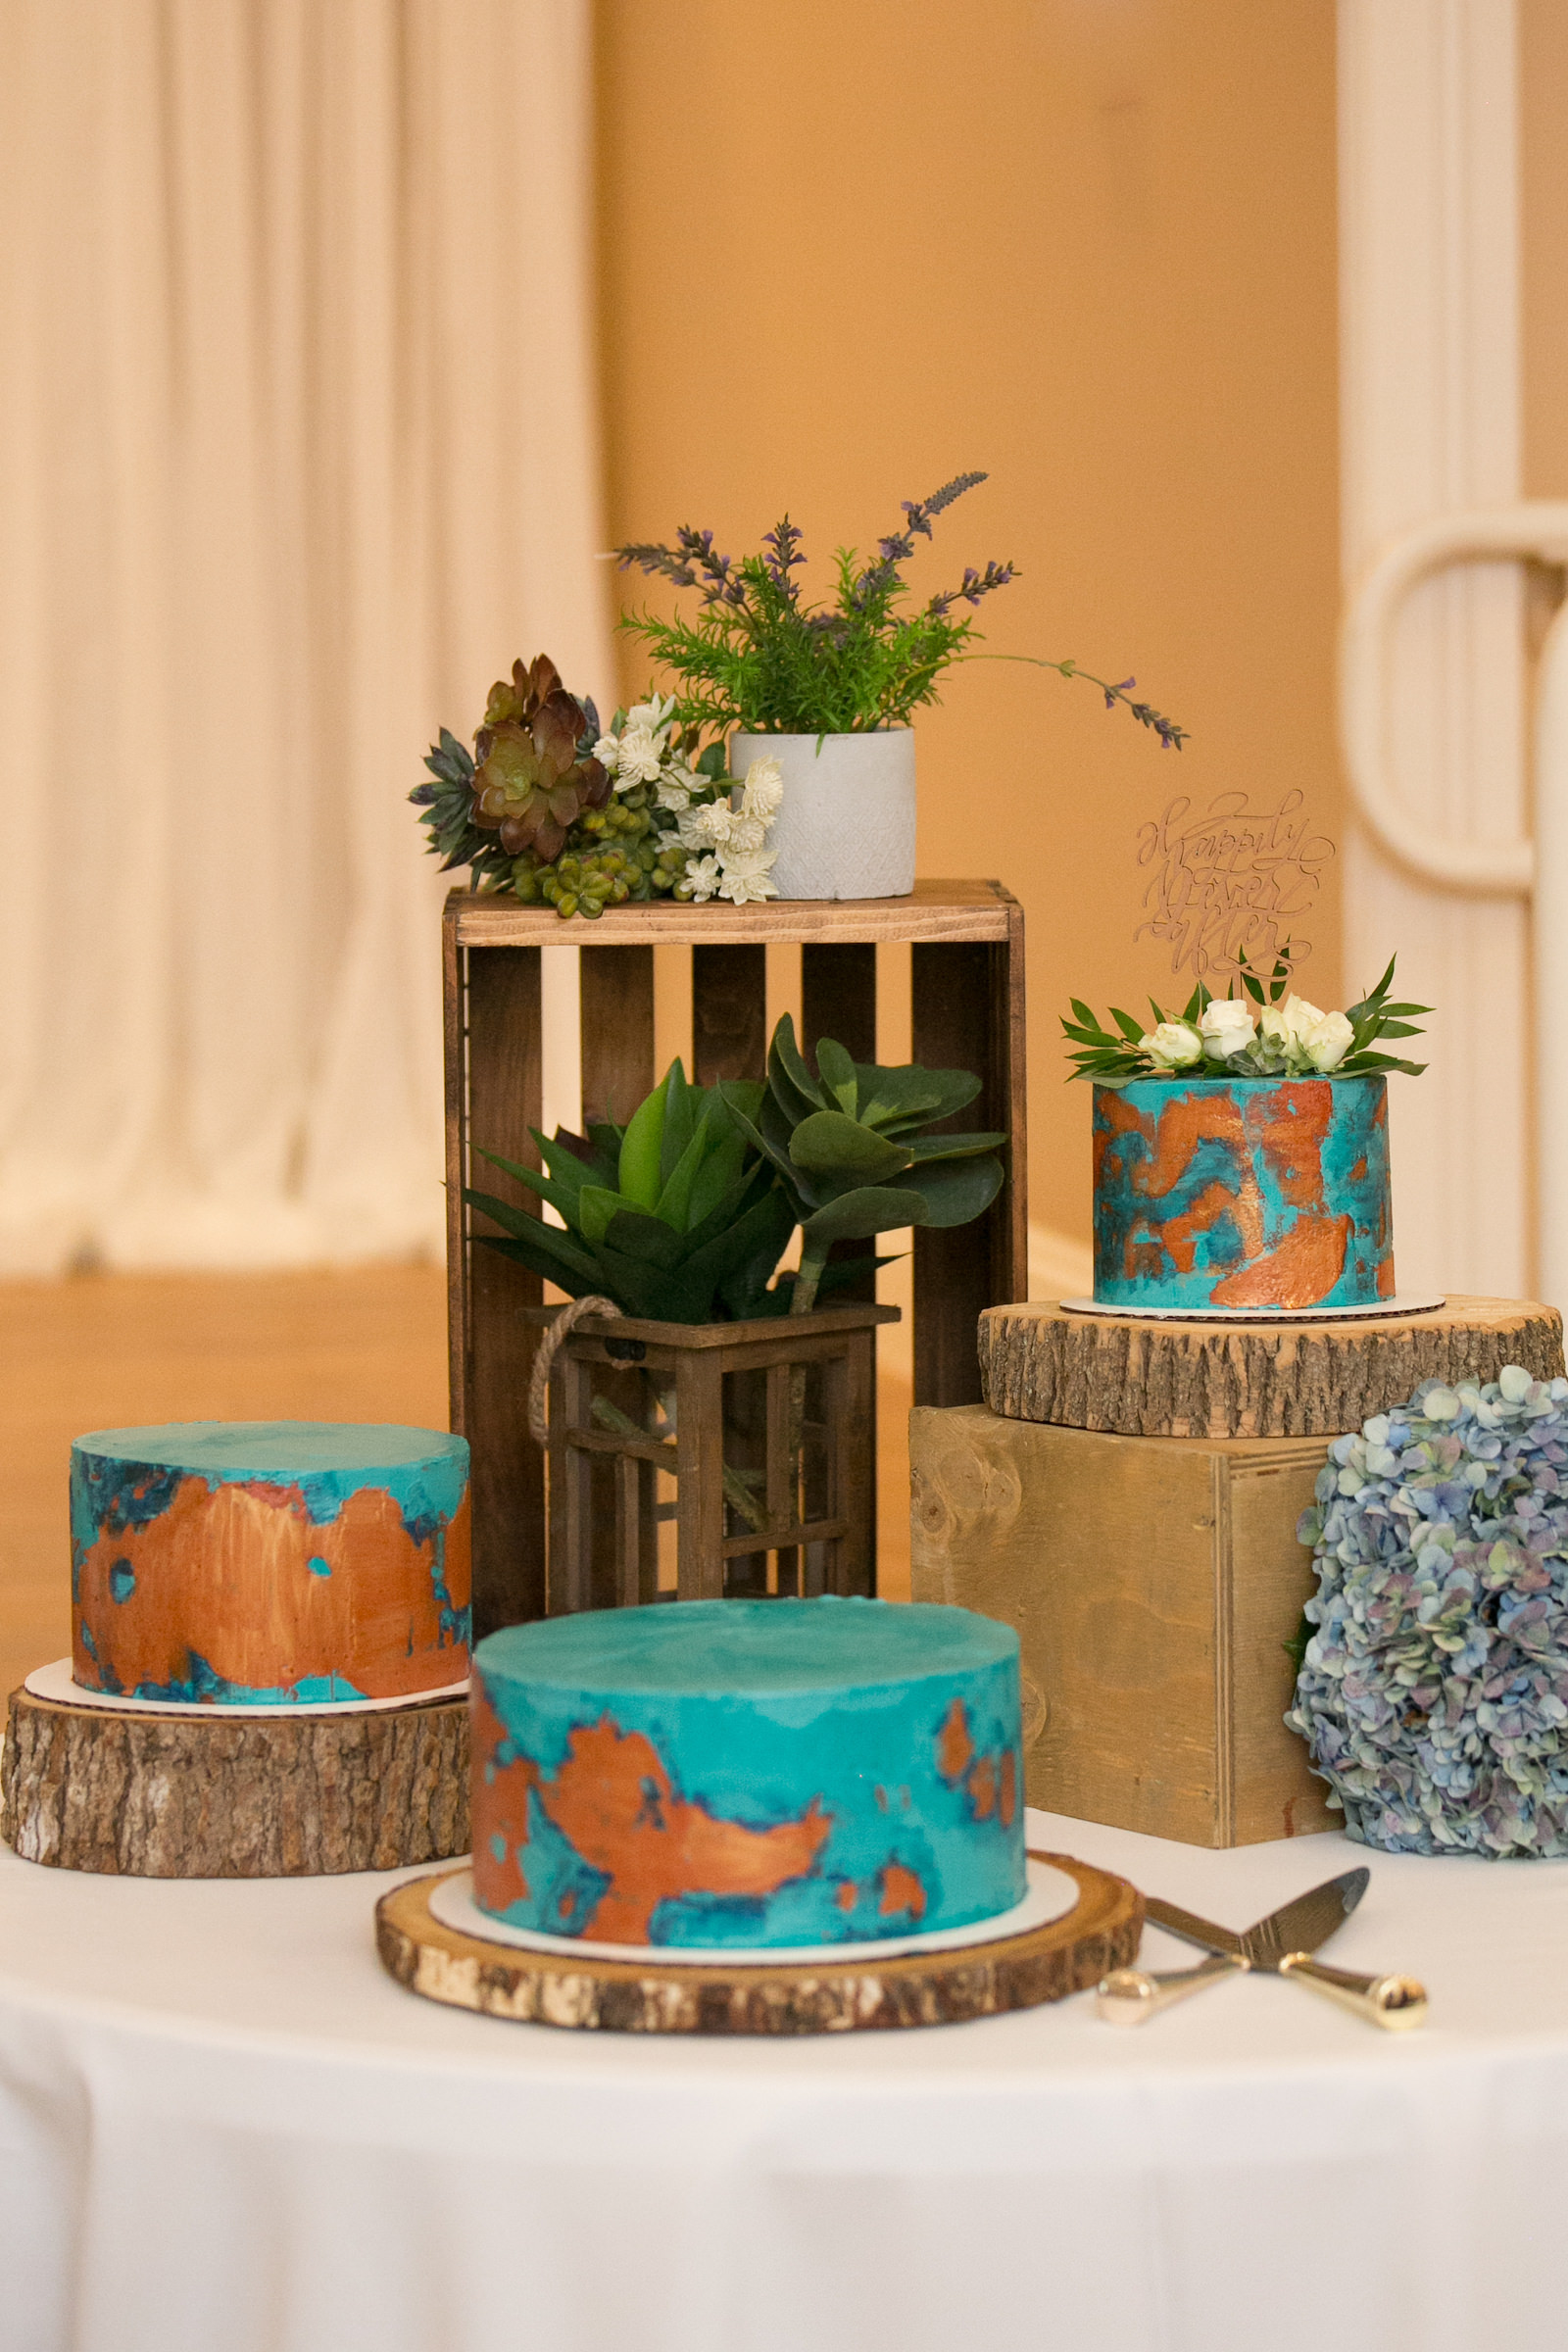 Unique Wedding Cakes, Three Separate One Tier Blue Teal and Copper Painted Wedding Cakes on Rustic Wood Stands, Succulents Decor | Wedding Photographer Carrie Wildes Photography